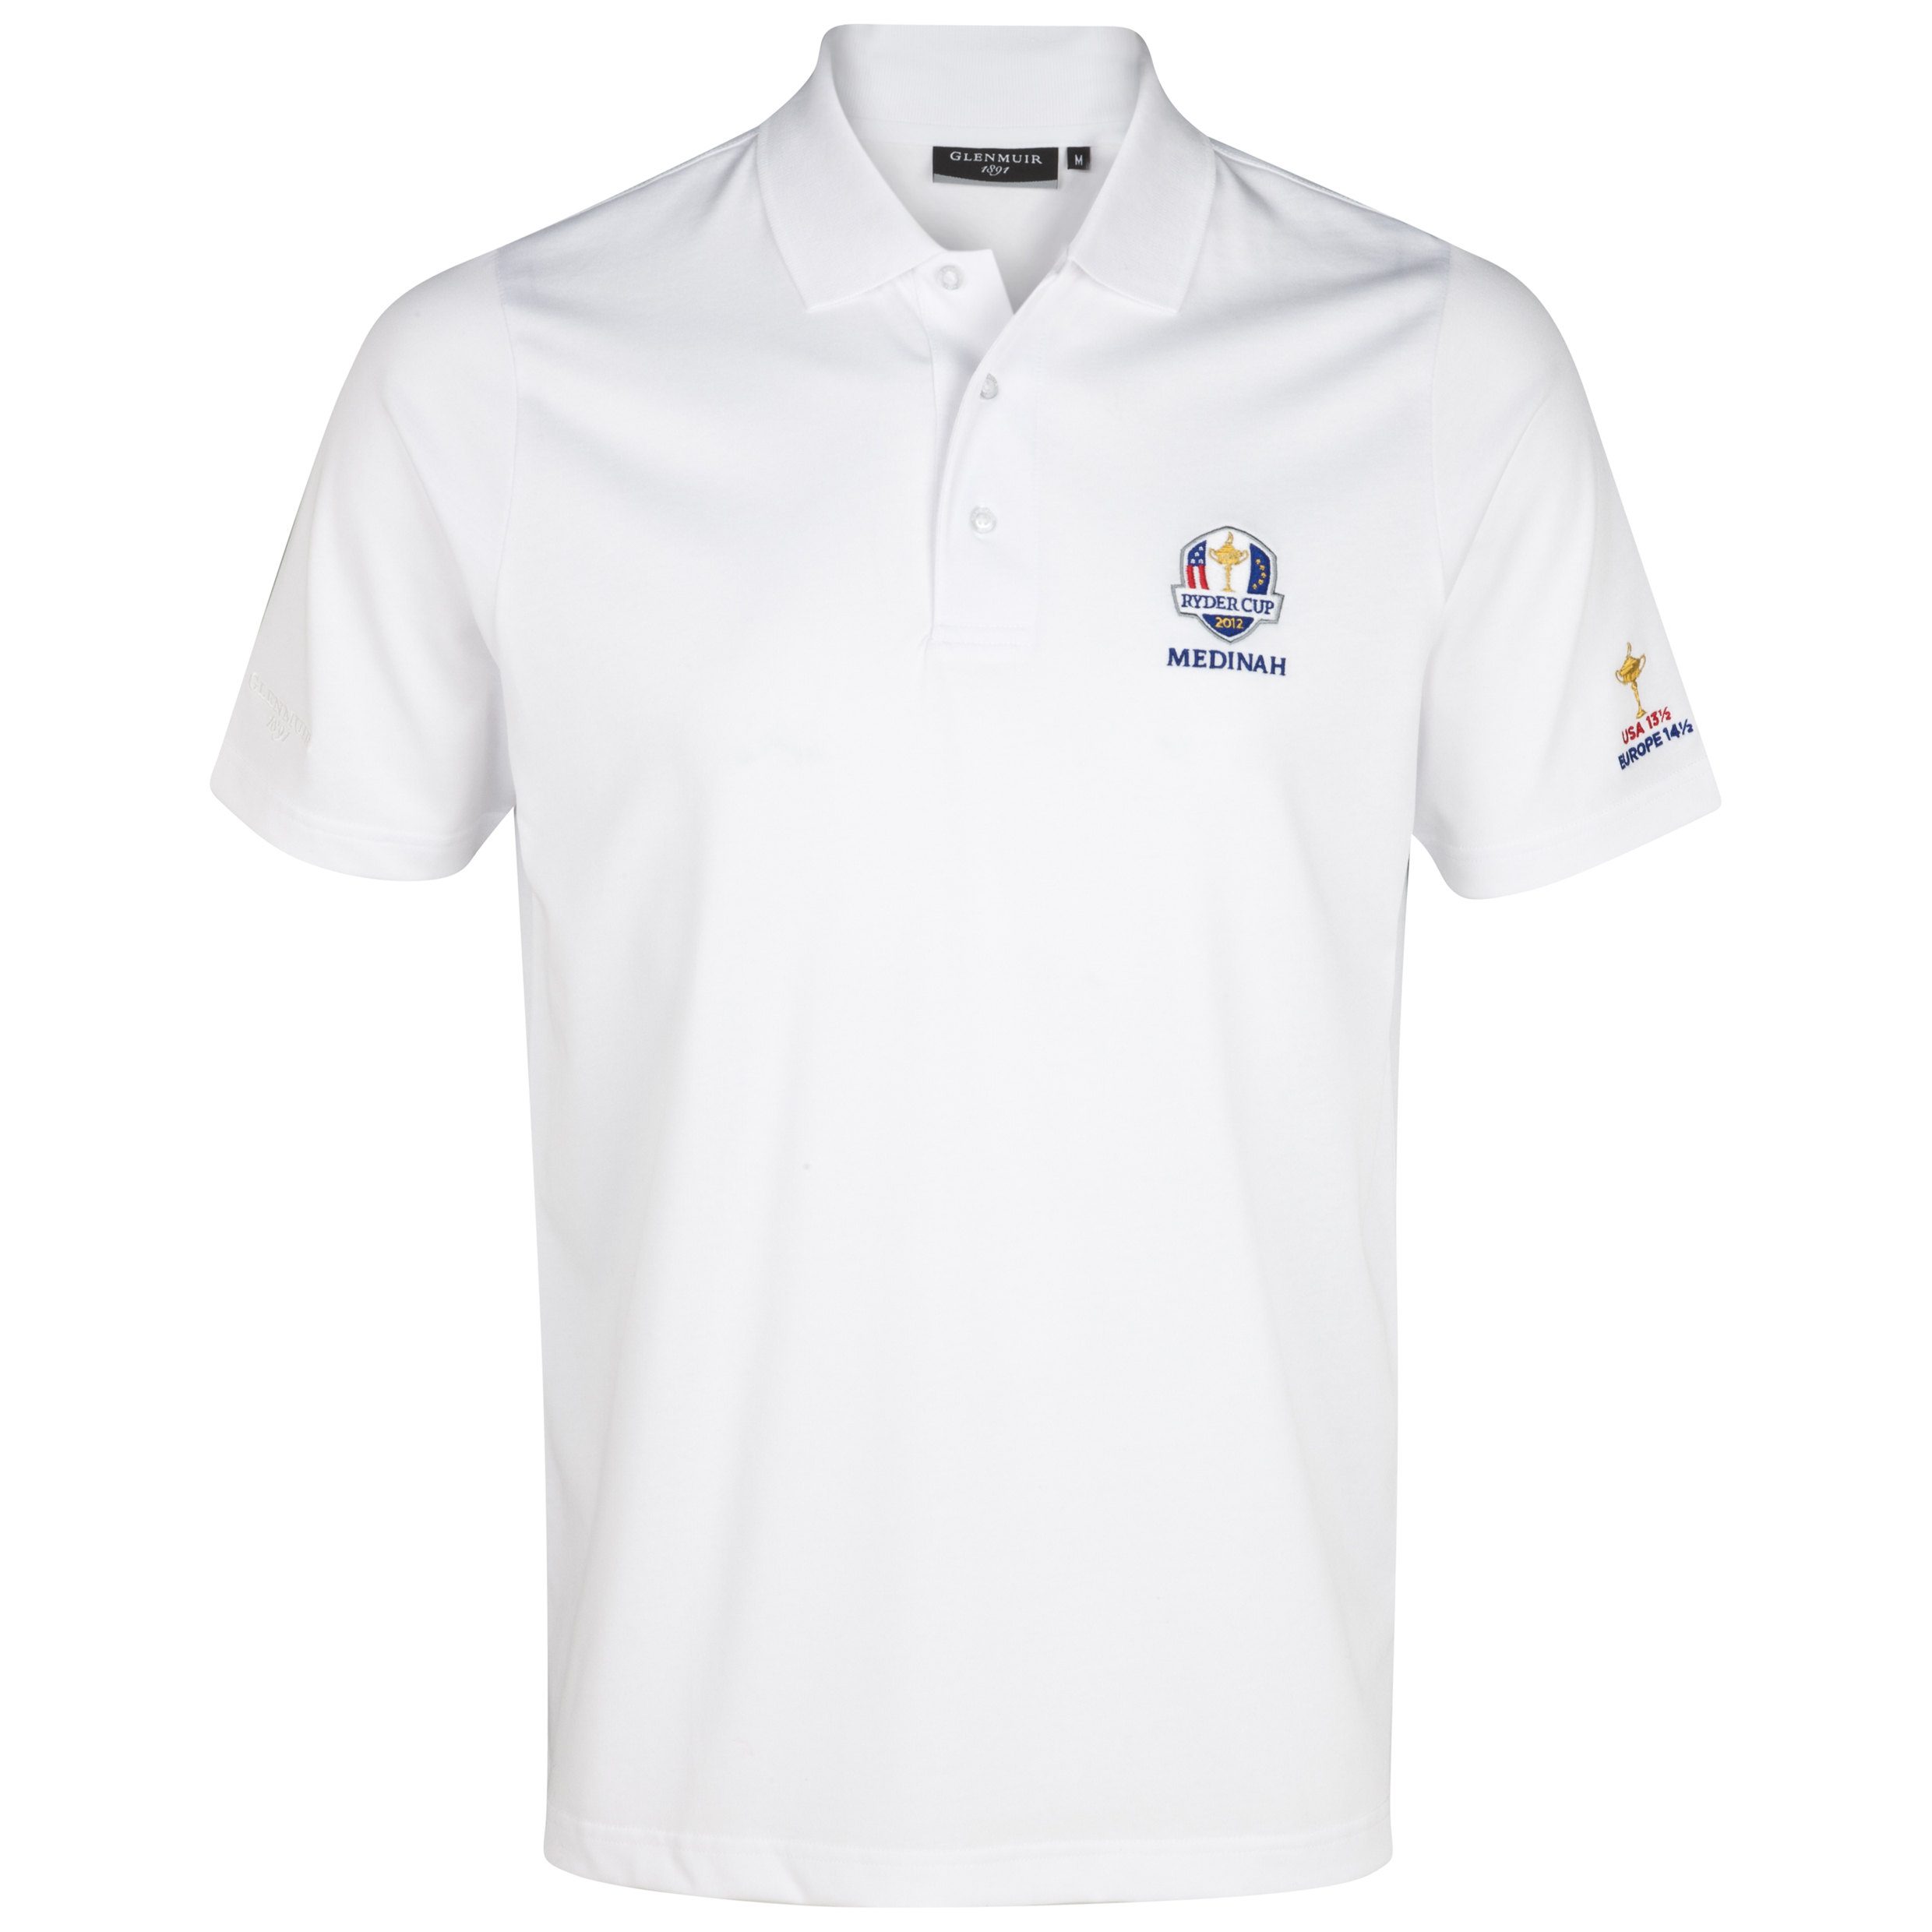 The 2014 Ryder Cup Glenmuir Angus Commemorative Winners Polo - White